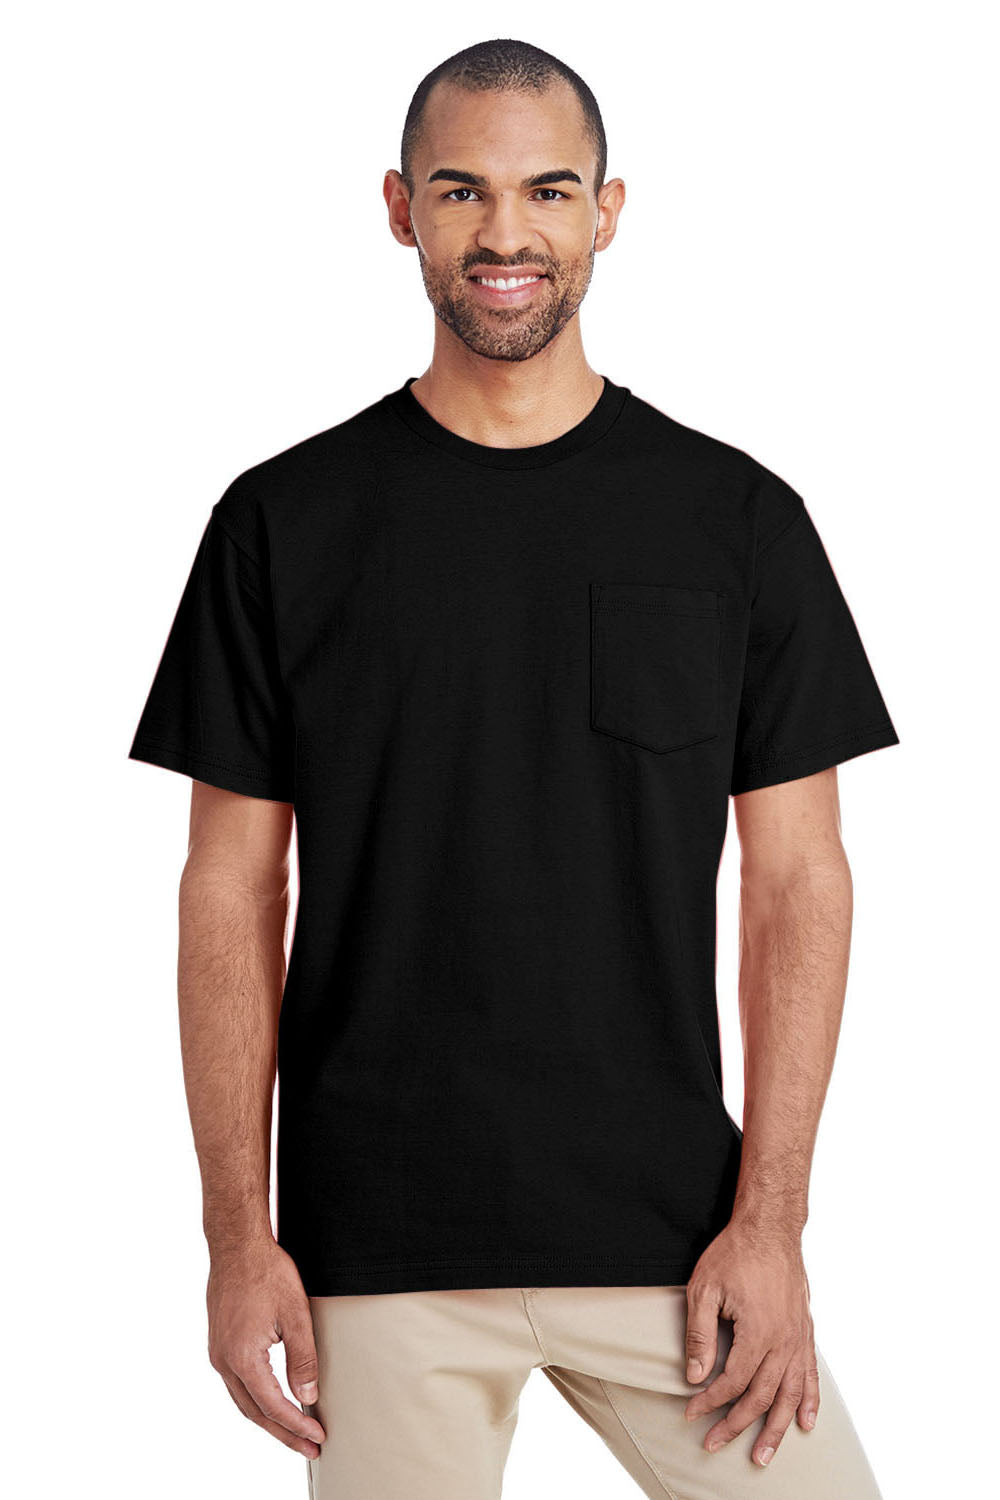 Gildan H300 Mens Hammer Short Sleeve Crewneck T-Shirt w/ Pocket Black Front